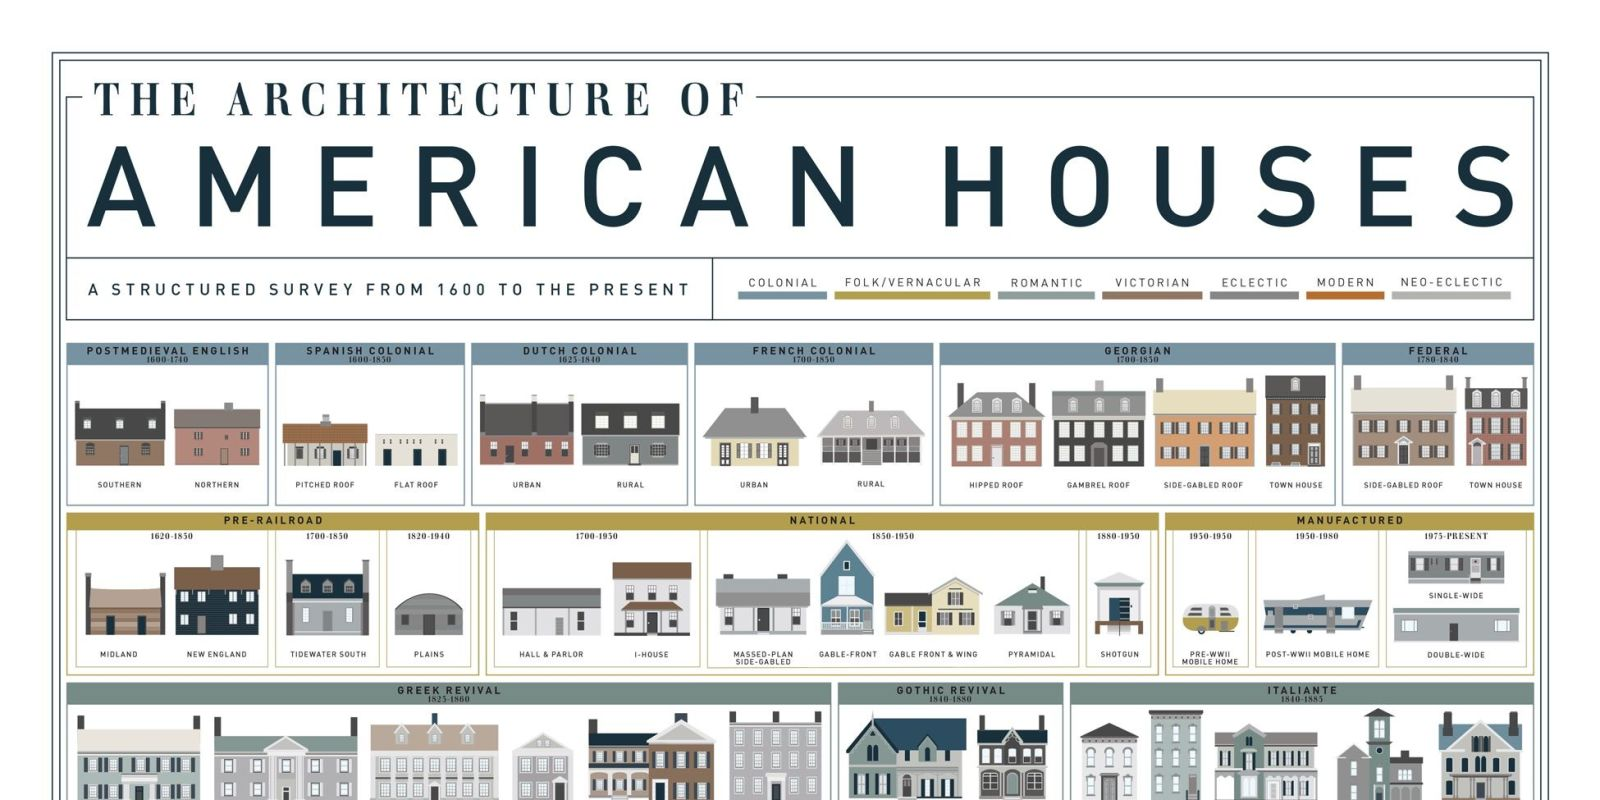 American house styles house architecture Styles of houses